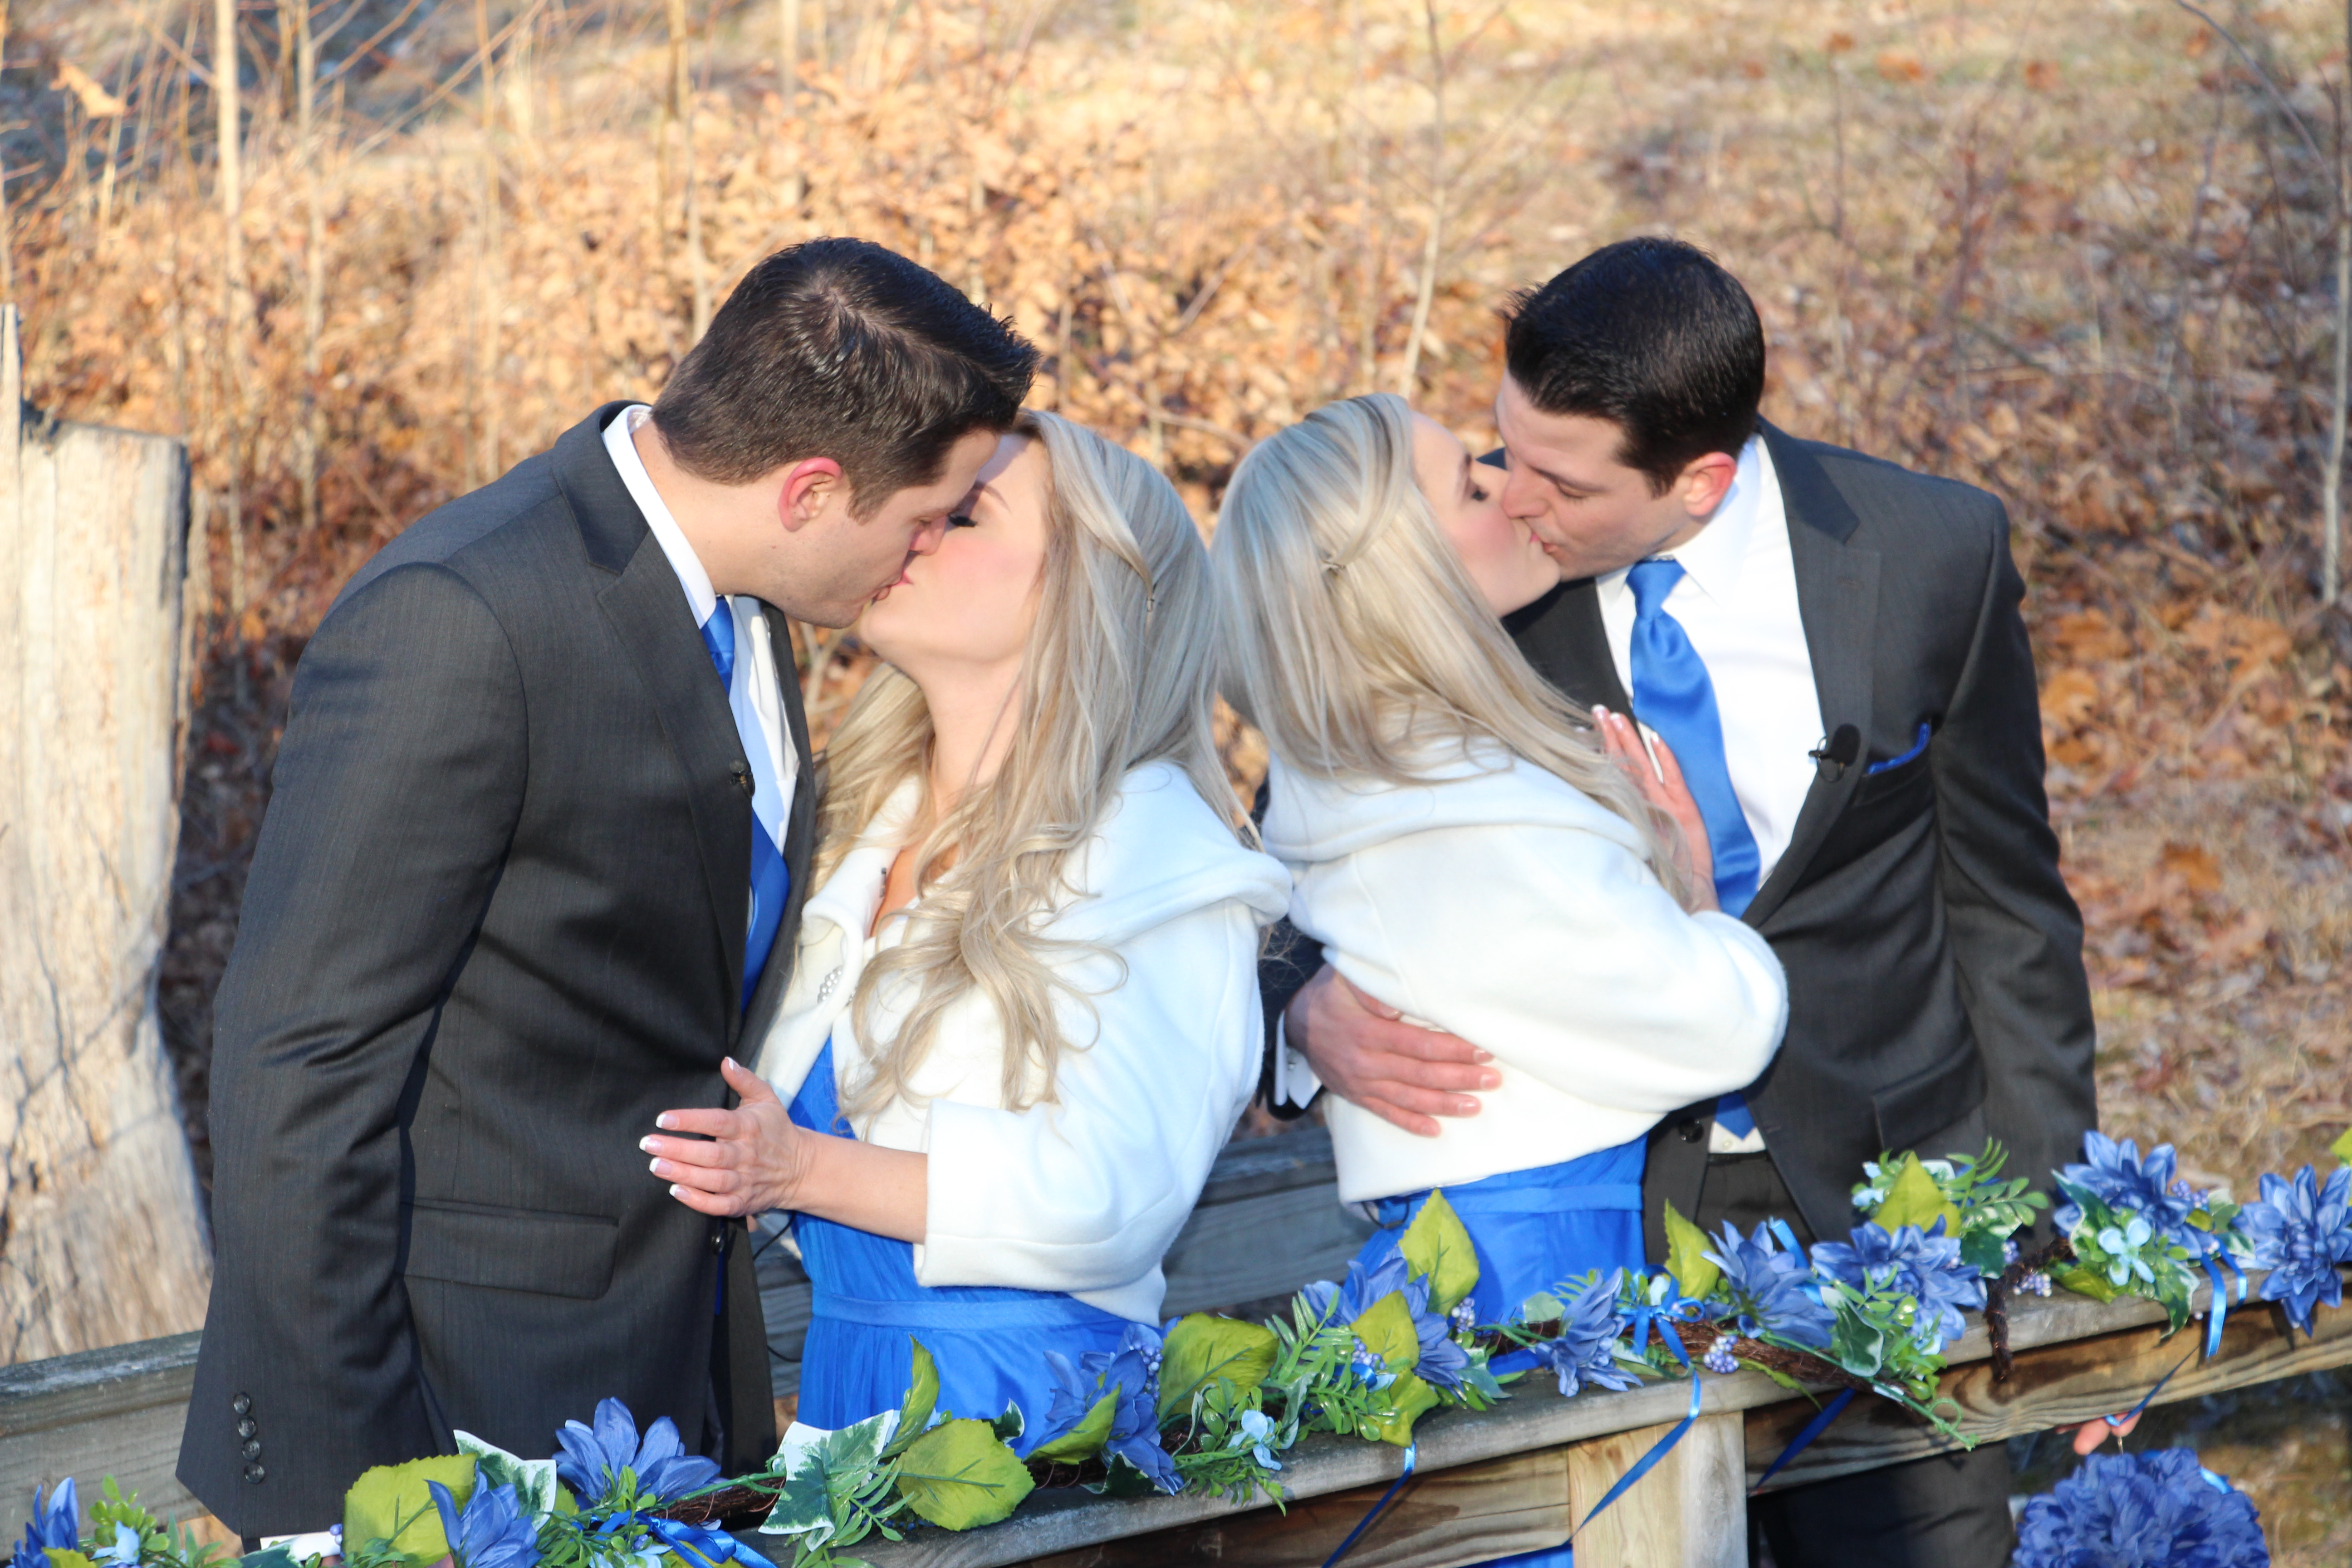 Image 2 of You Are Not Seeing Double – These Identical Twins Brothers Just Proposed to Identical Twins Sisters